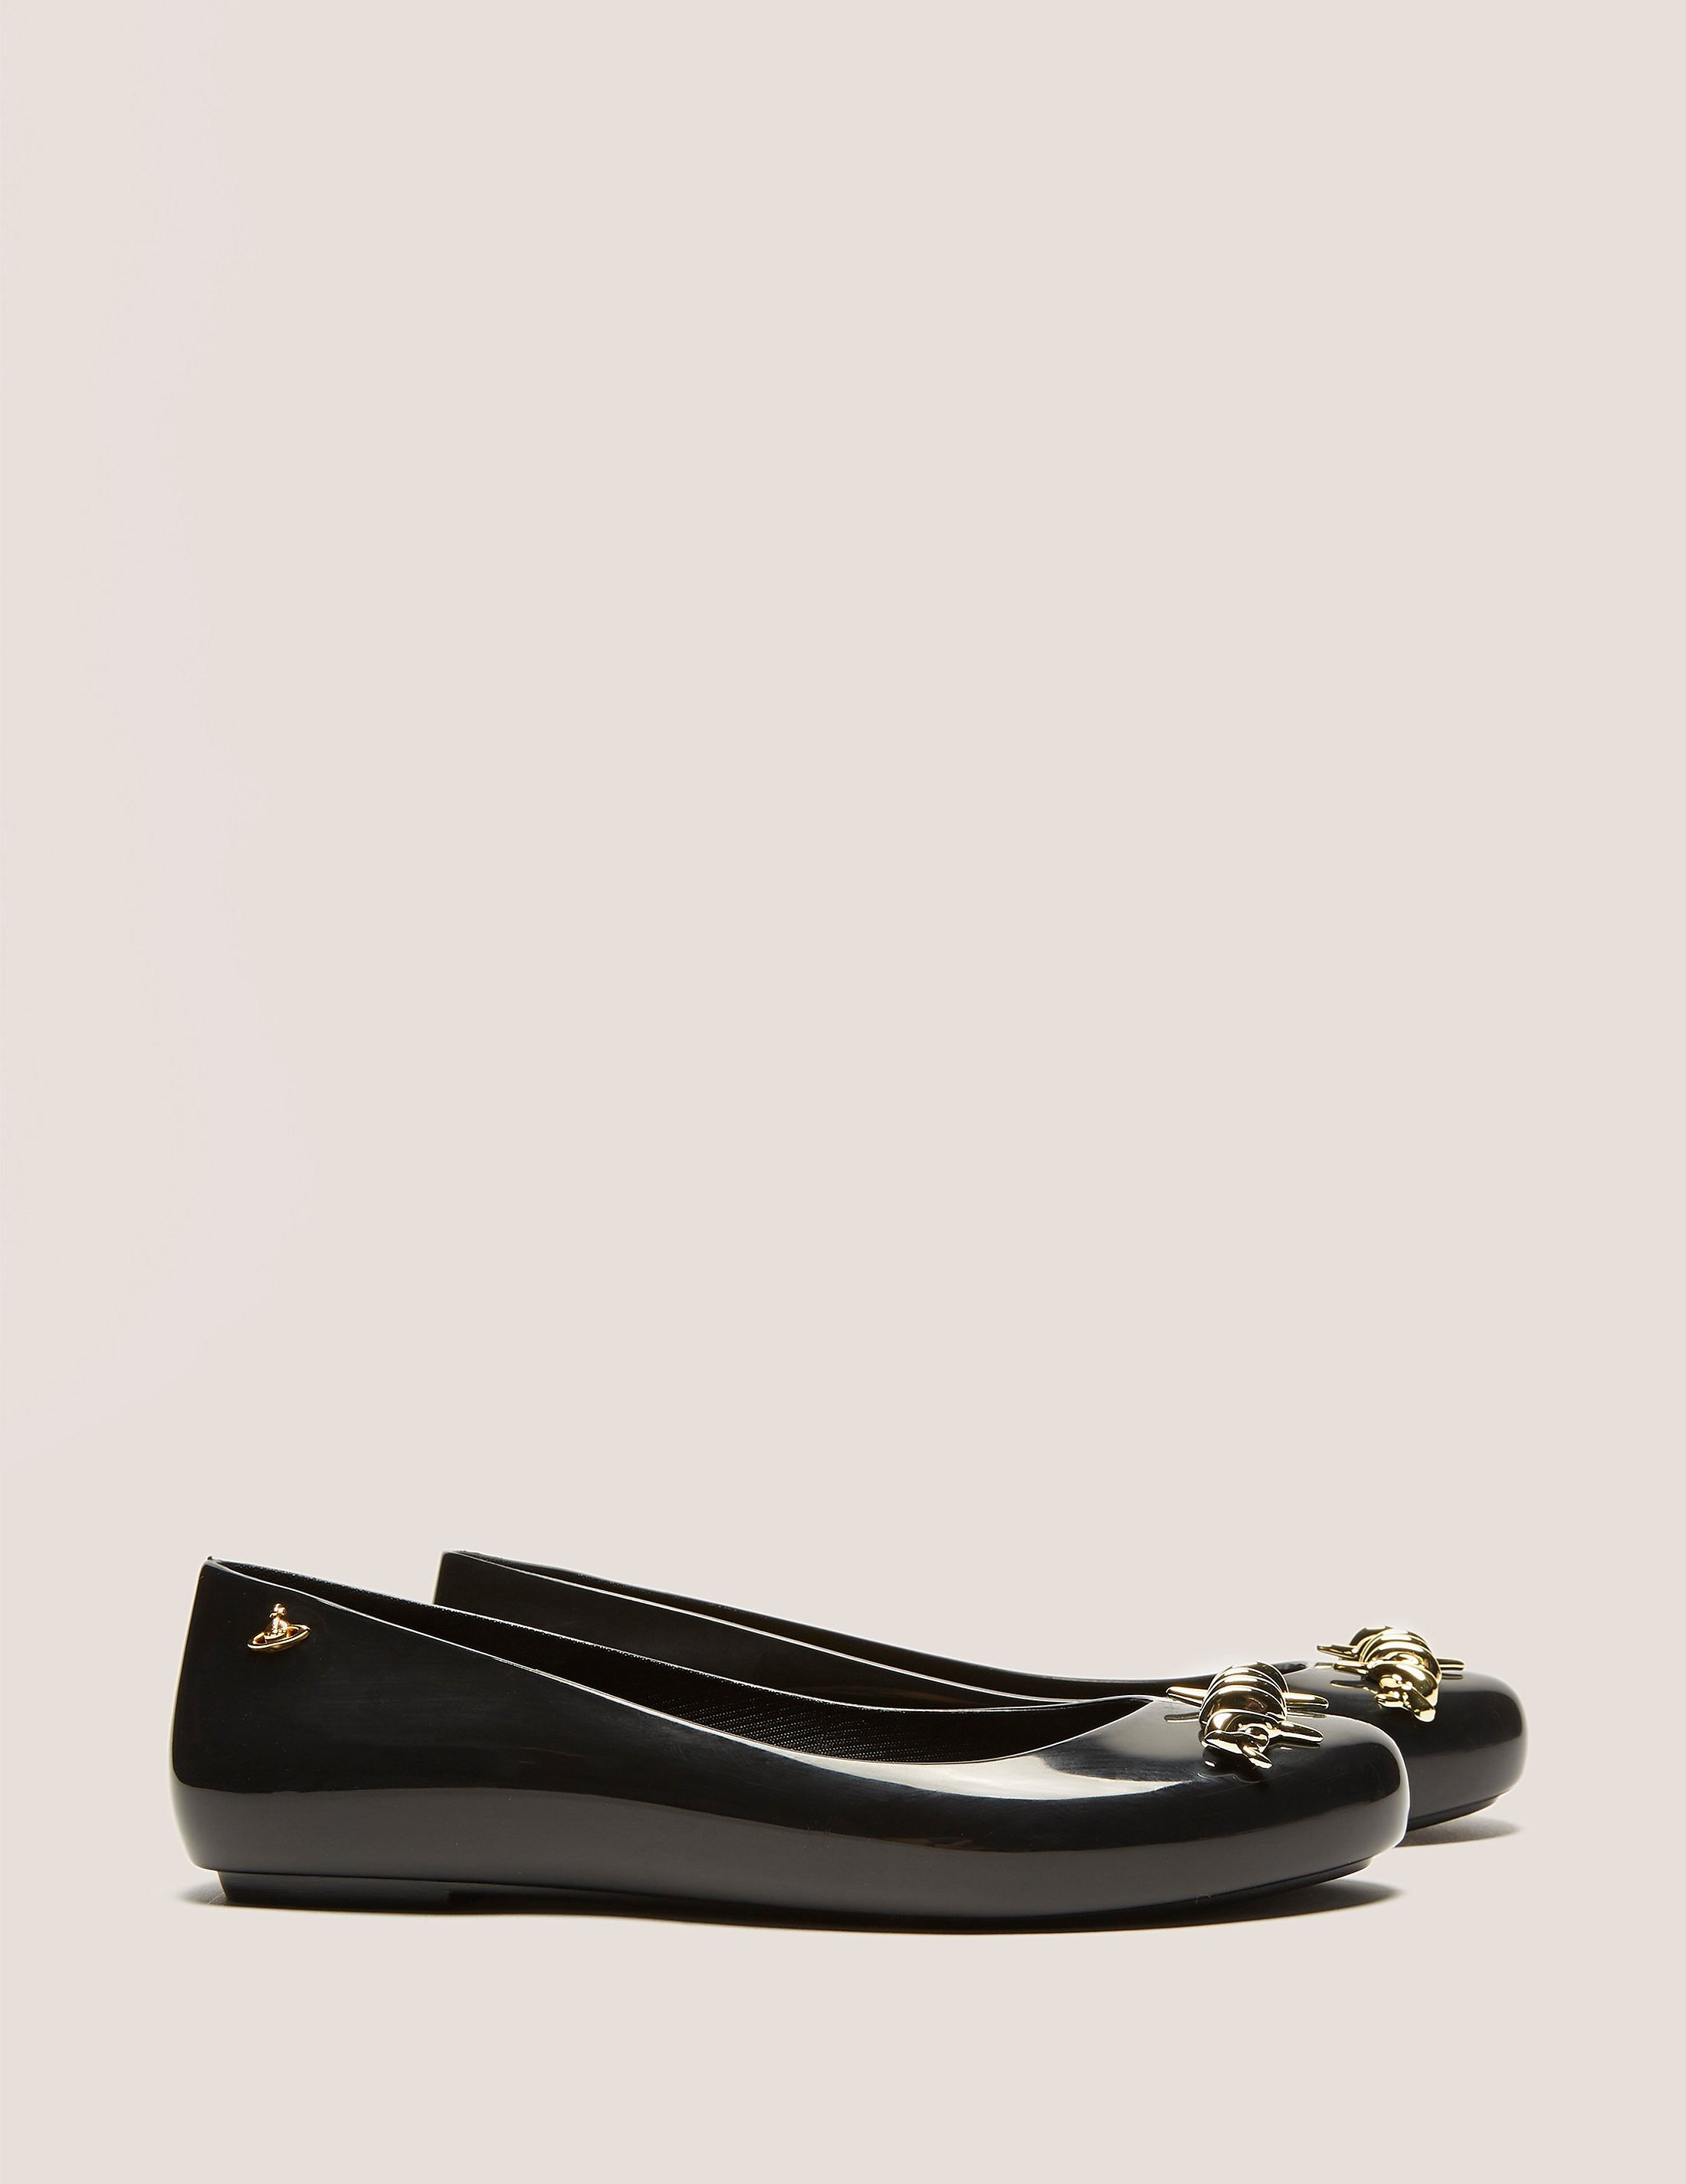 Melissa X Vivienne Westwood Space Love Barb Pumps